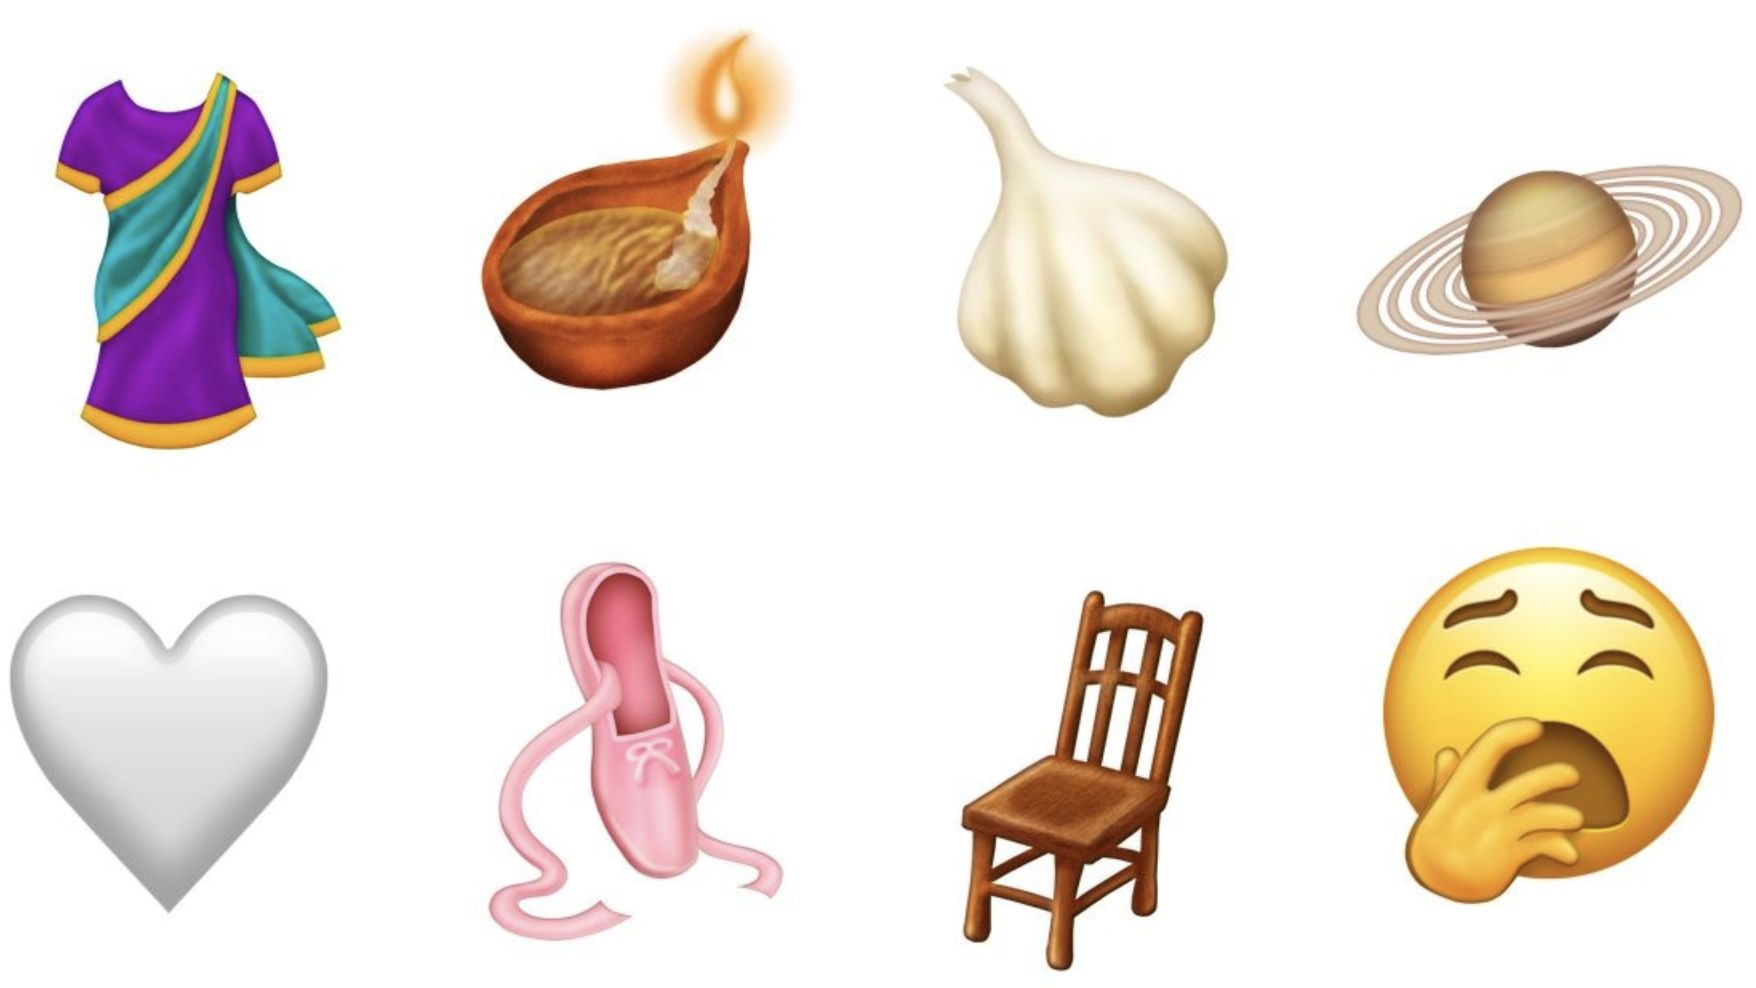 Ios 13 5 Release Date Beta Features And Changes Coming To Your Iphone Emoji Update Emoji Design Emoji